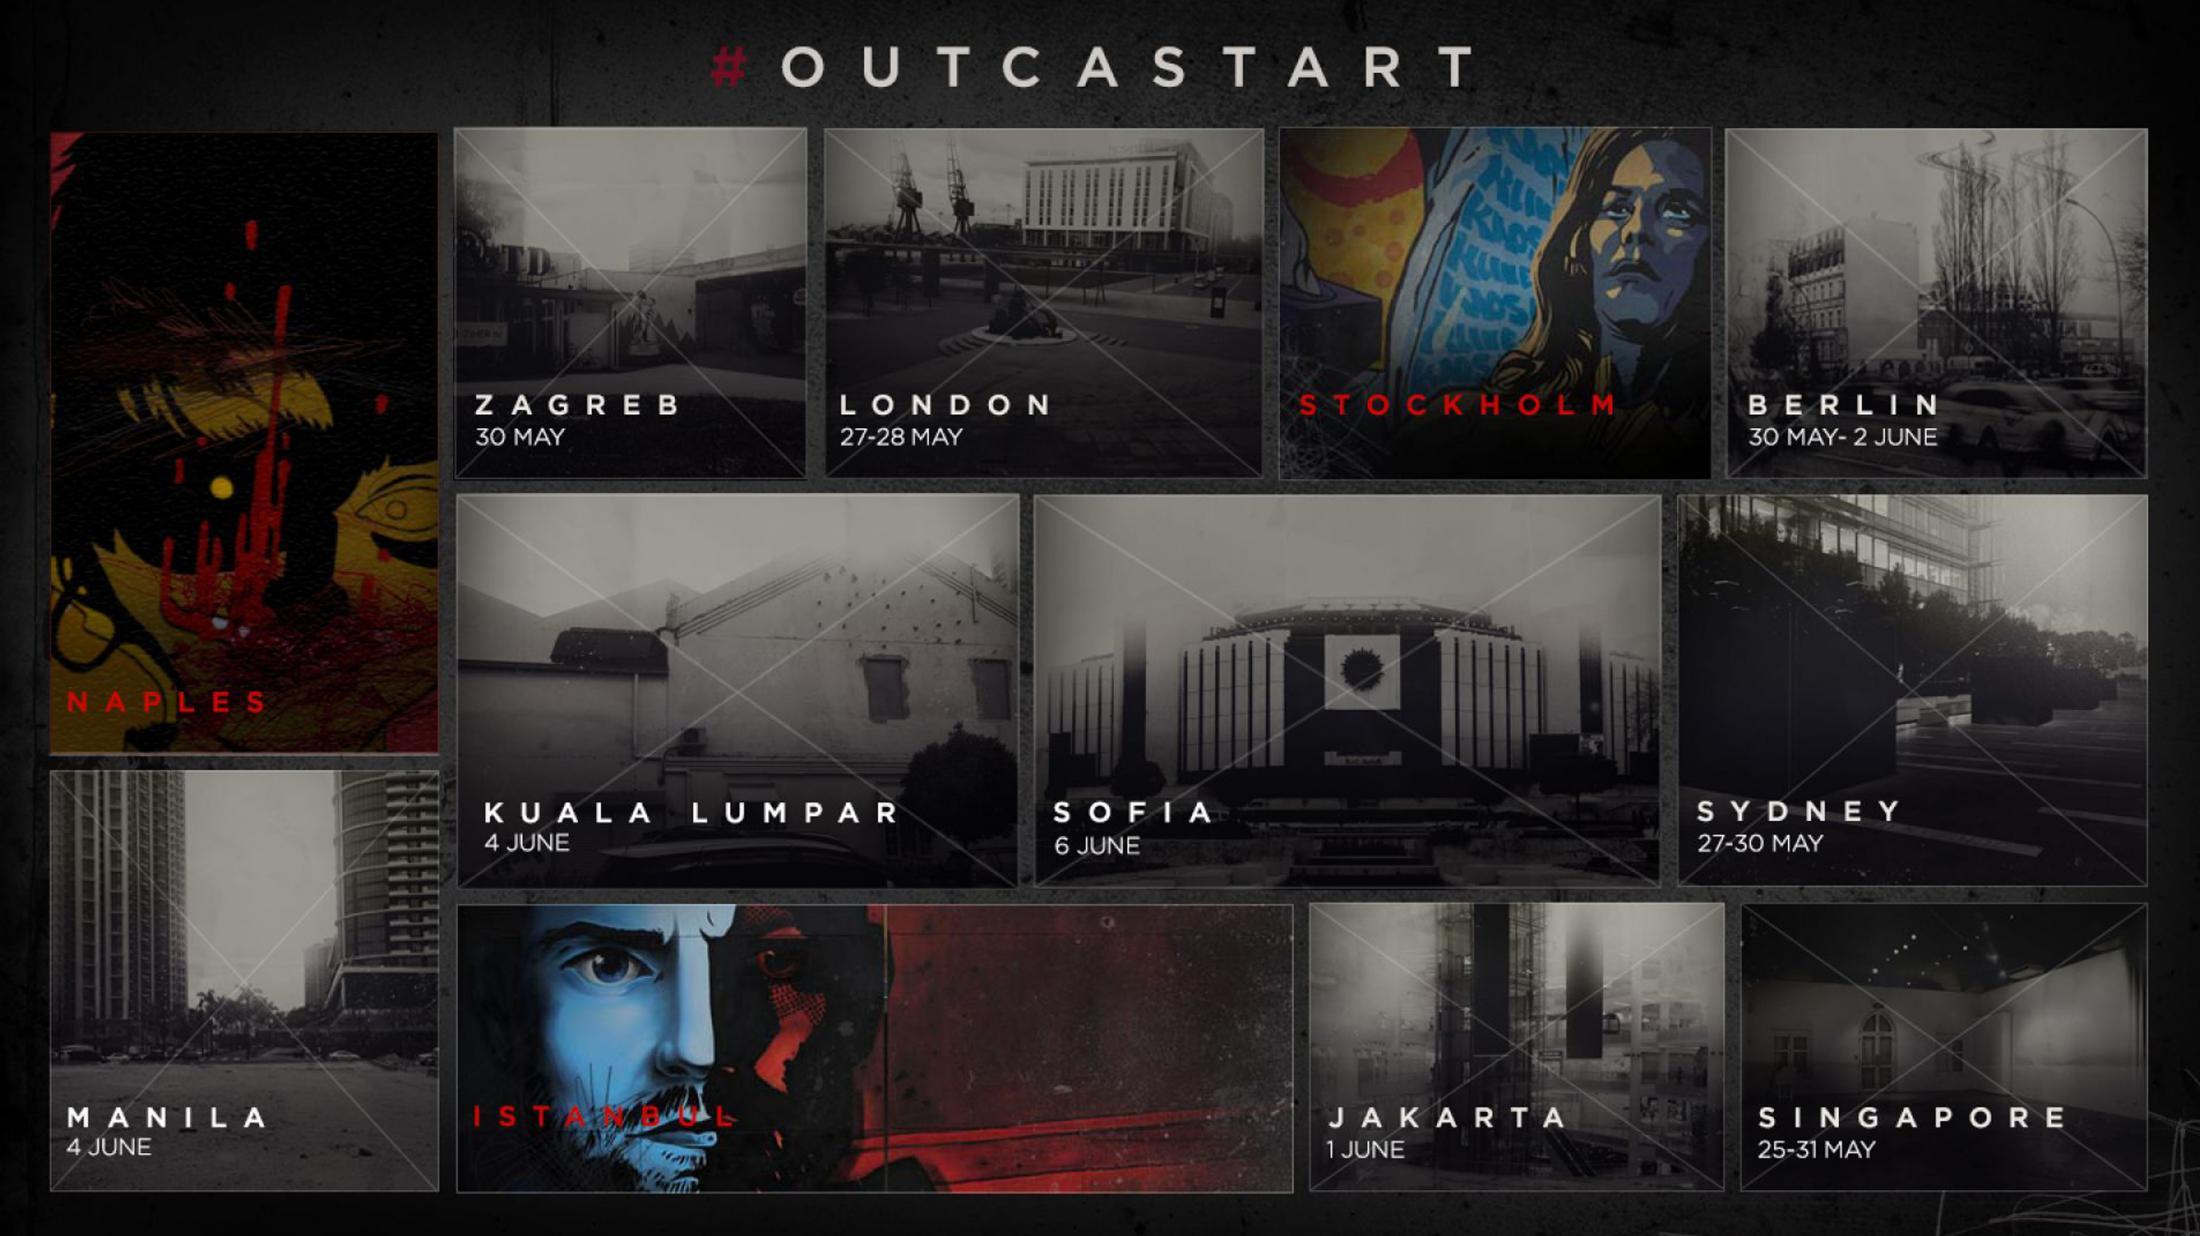 Image Media for Outcast Art